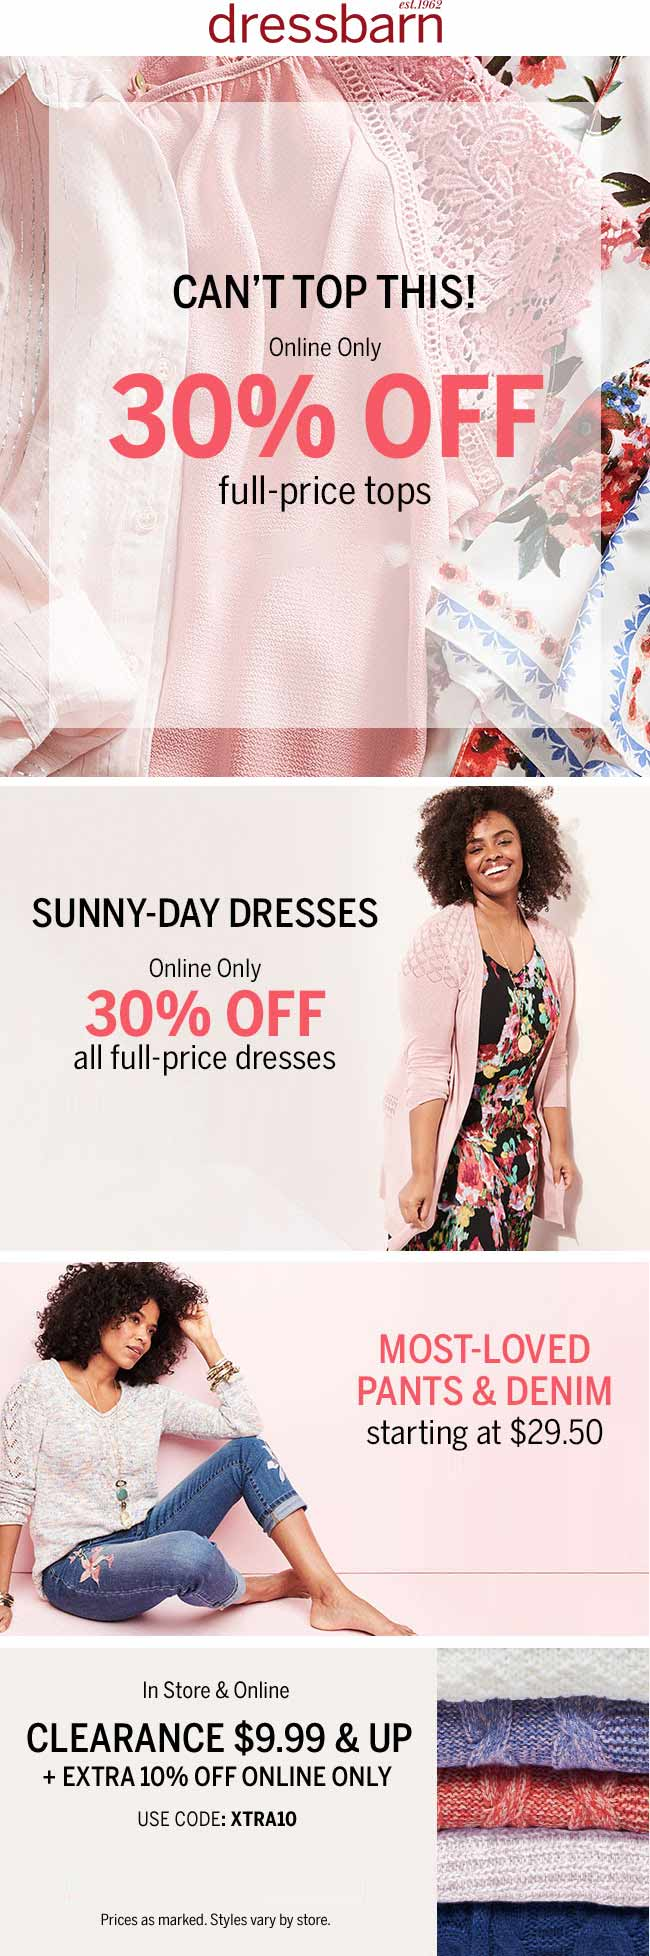 Dressbarn Coupon February 2020 30% off tops online at Dressbarn, no code needed